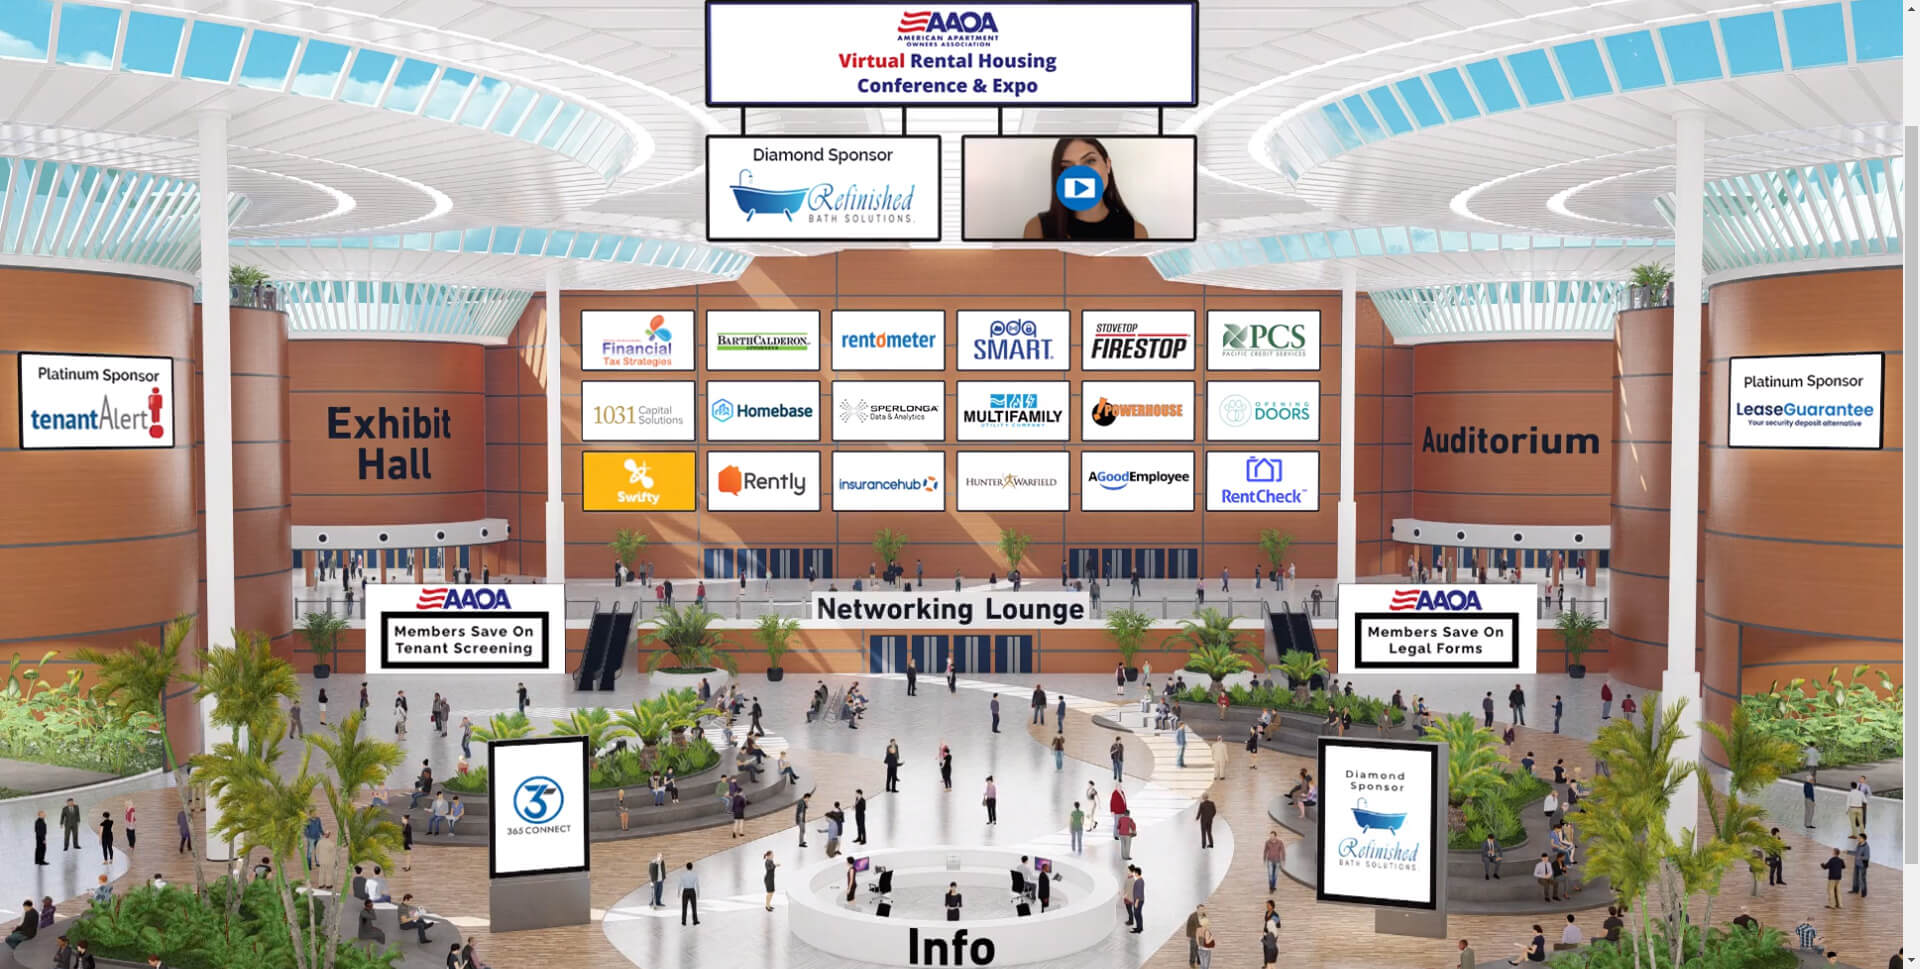 Virtual Rental Housing Conference & Expo